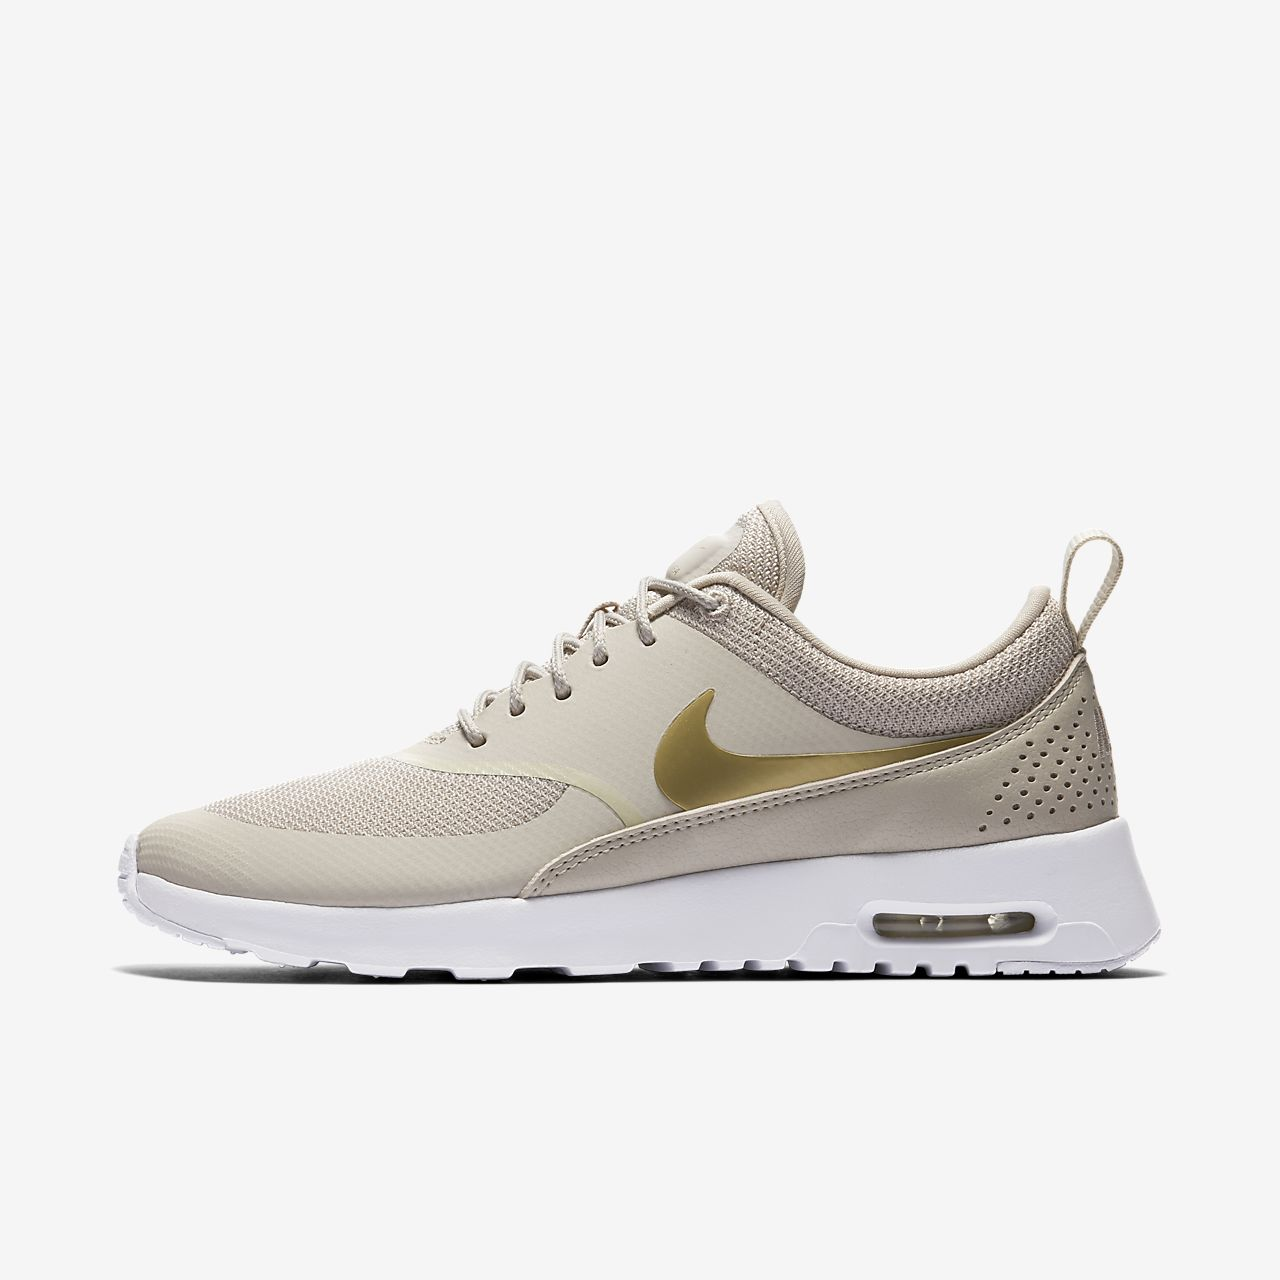 Chaussures  Nike Thea Air Max Thea Nike Femme  D7V9M heather hodges a195c0